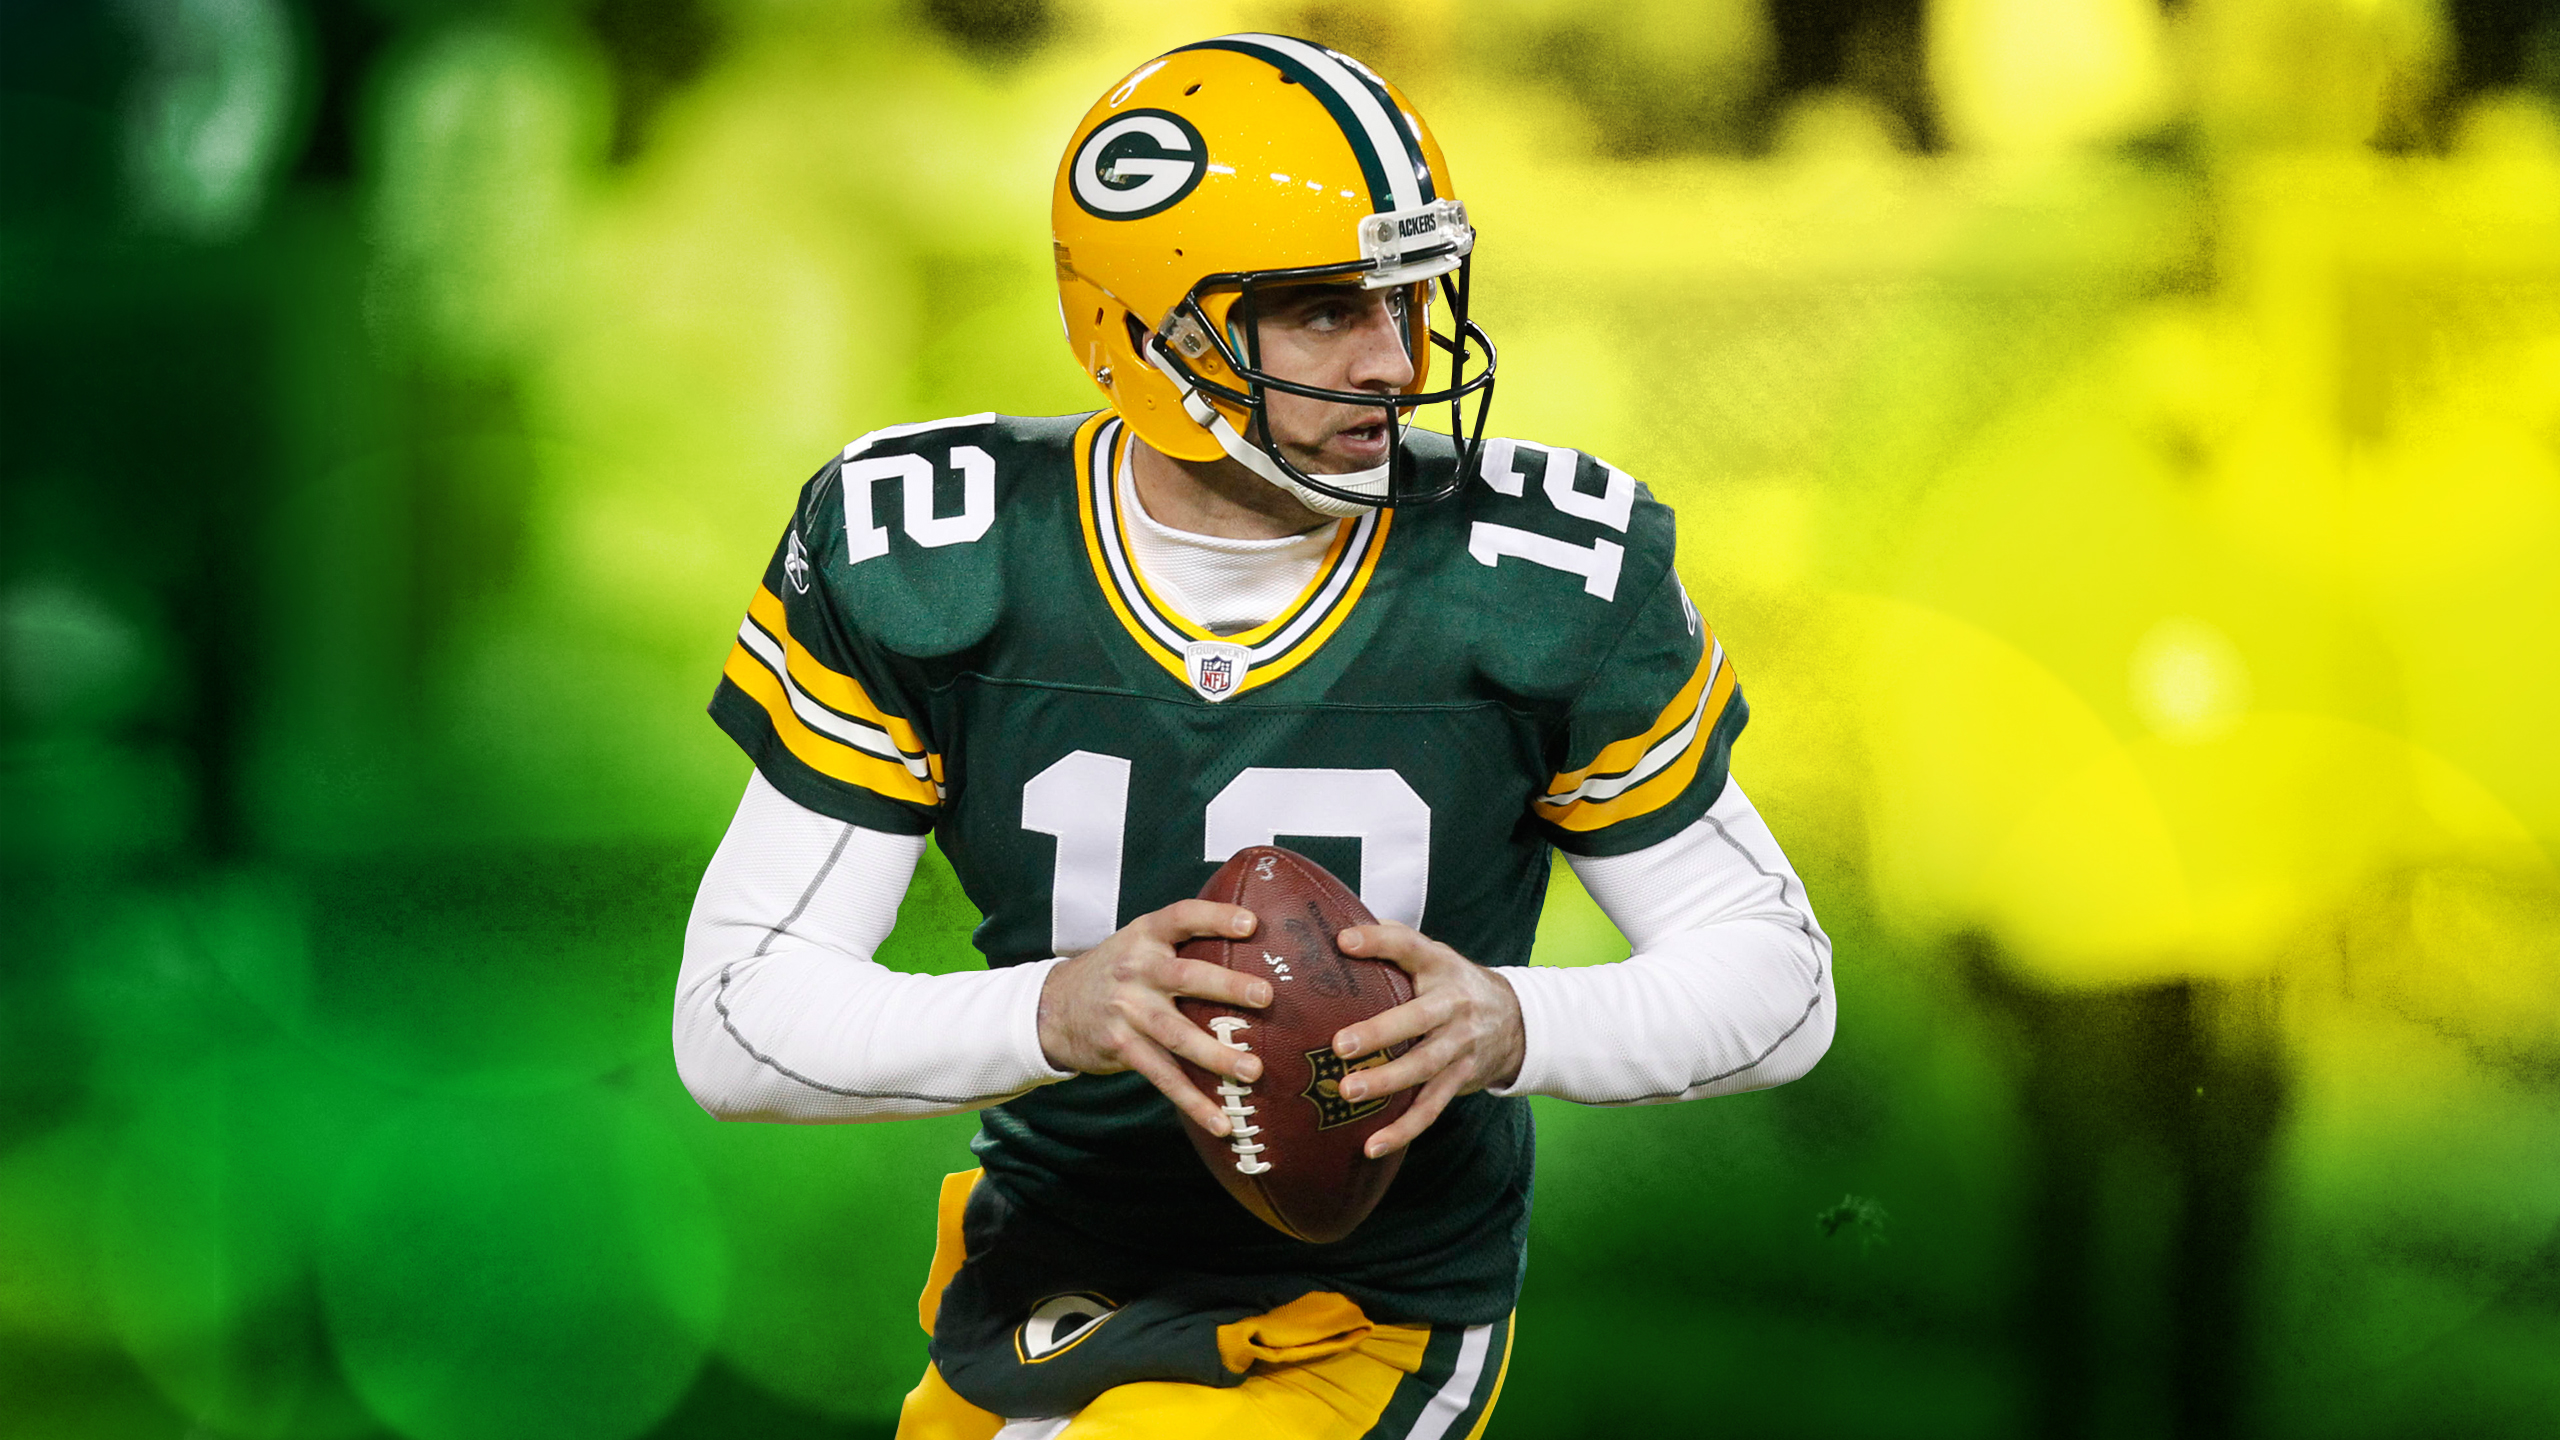 aaron rodgers wallpapers wallpaper high definition